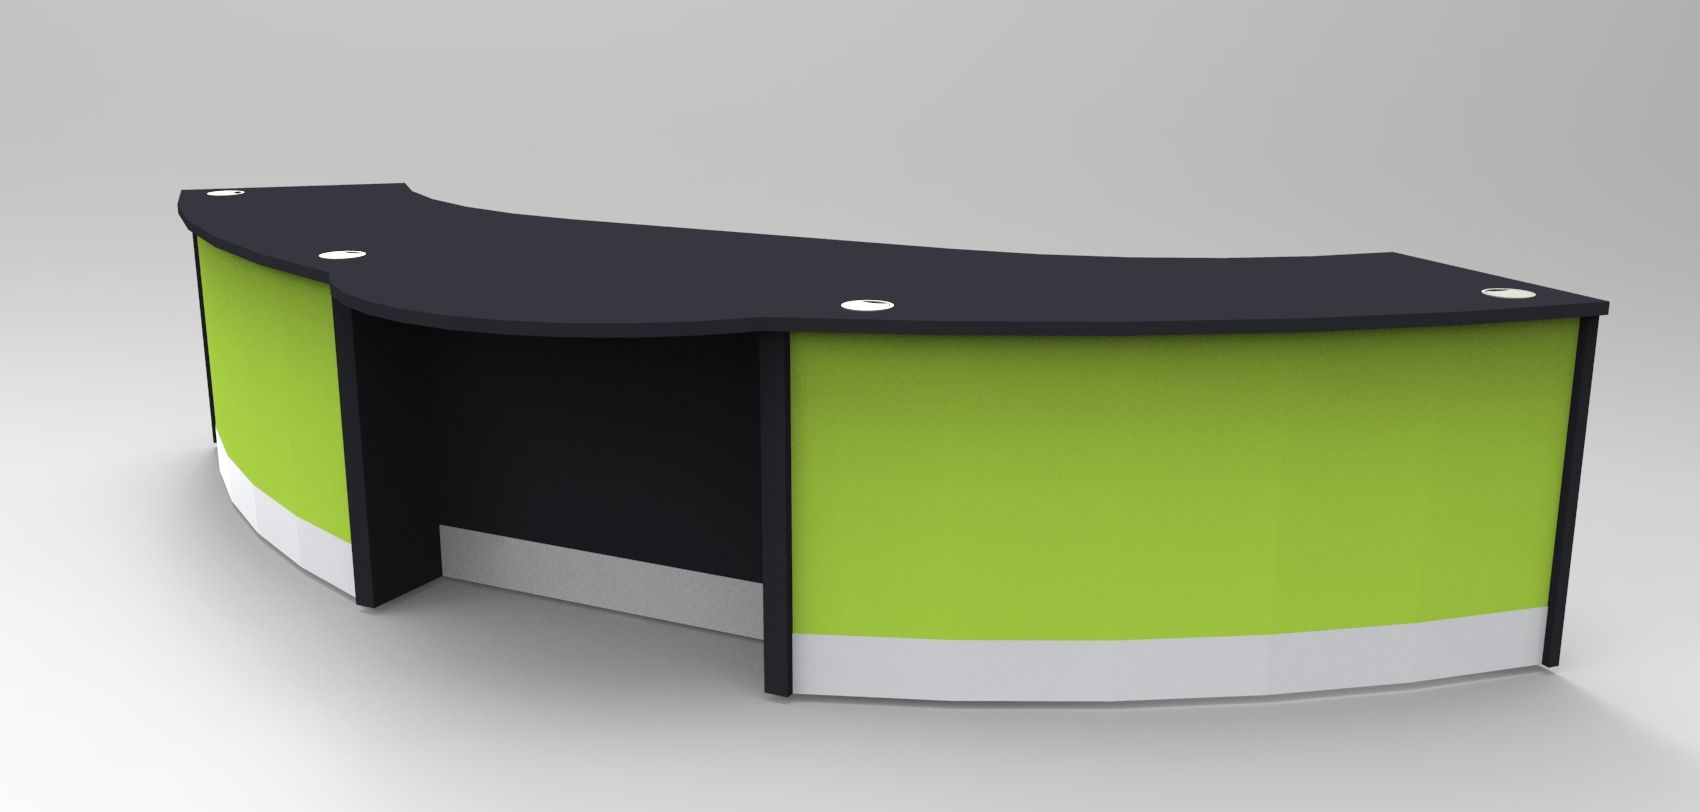 Aero Dda Reception Desk Finished In Black With Lime Green Modesty Panels